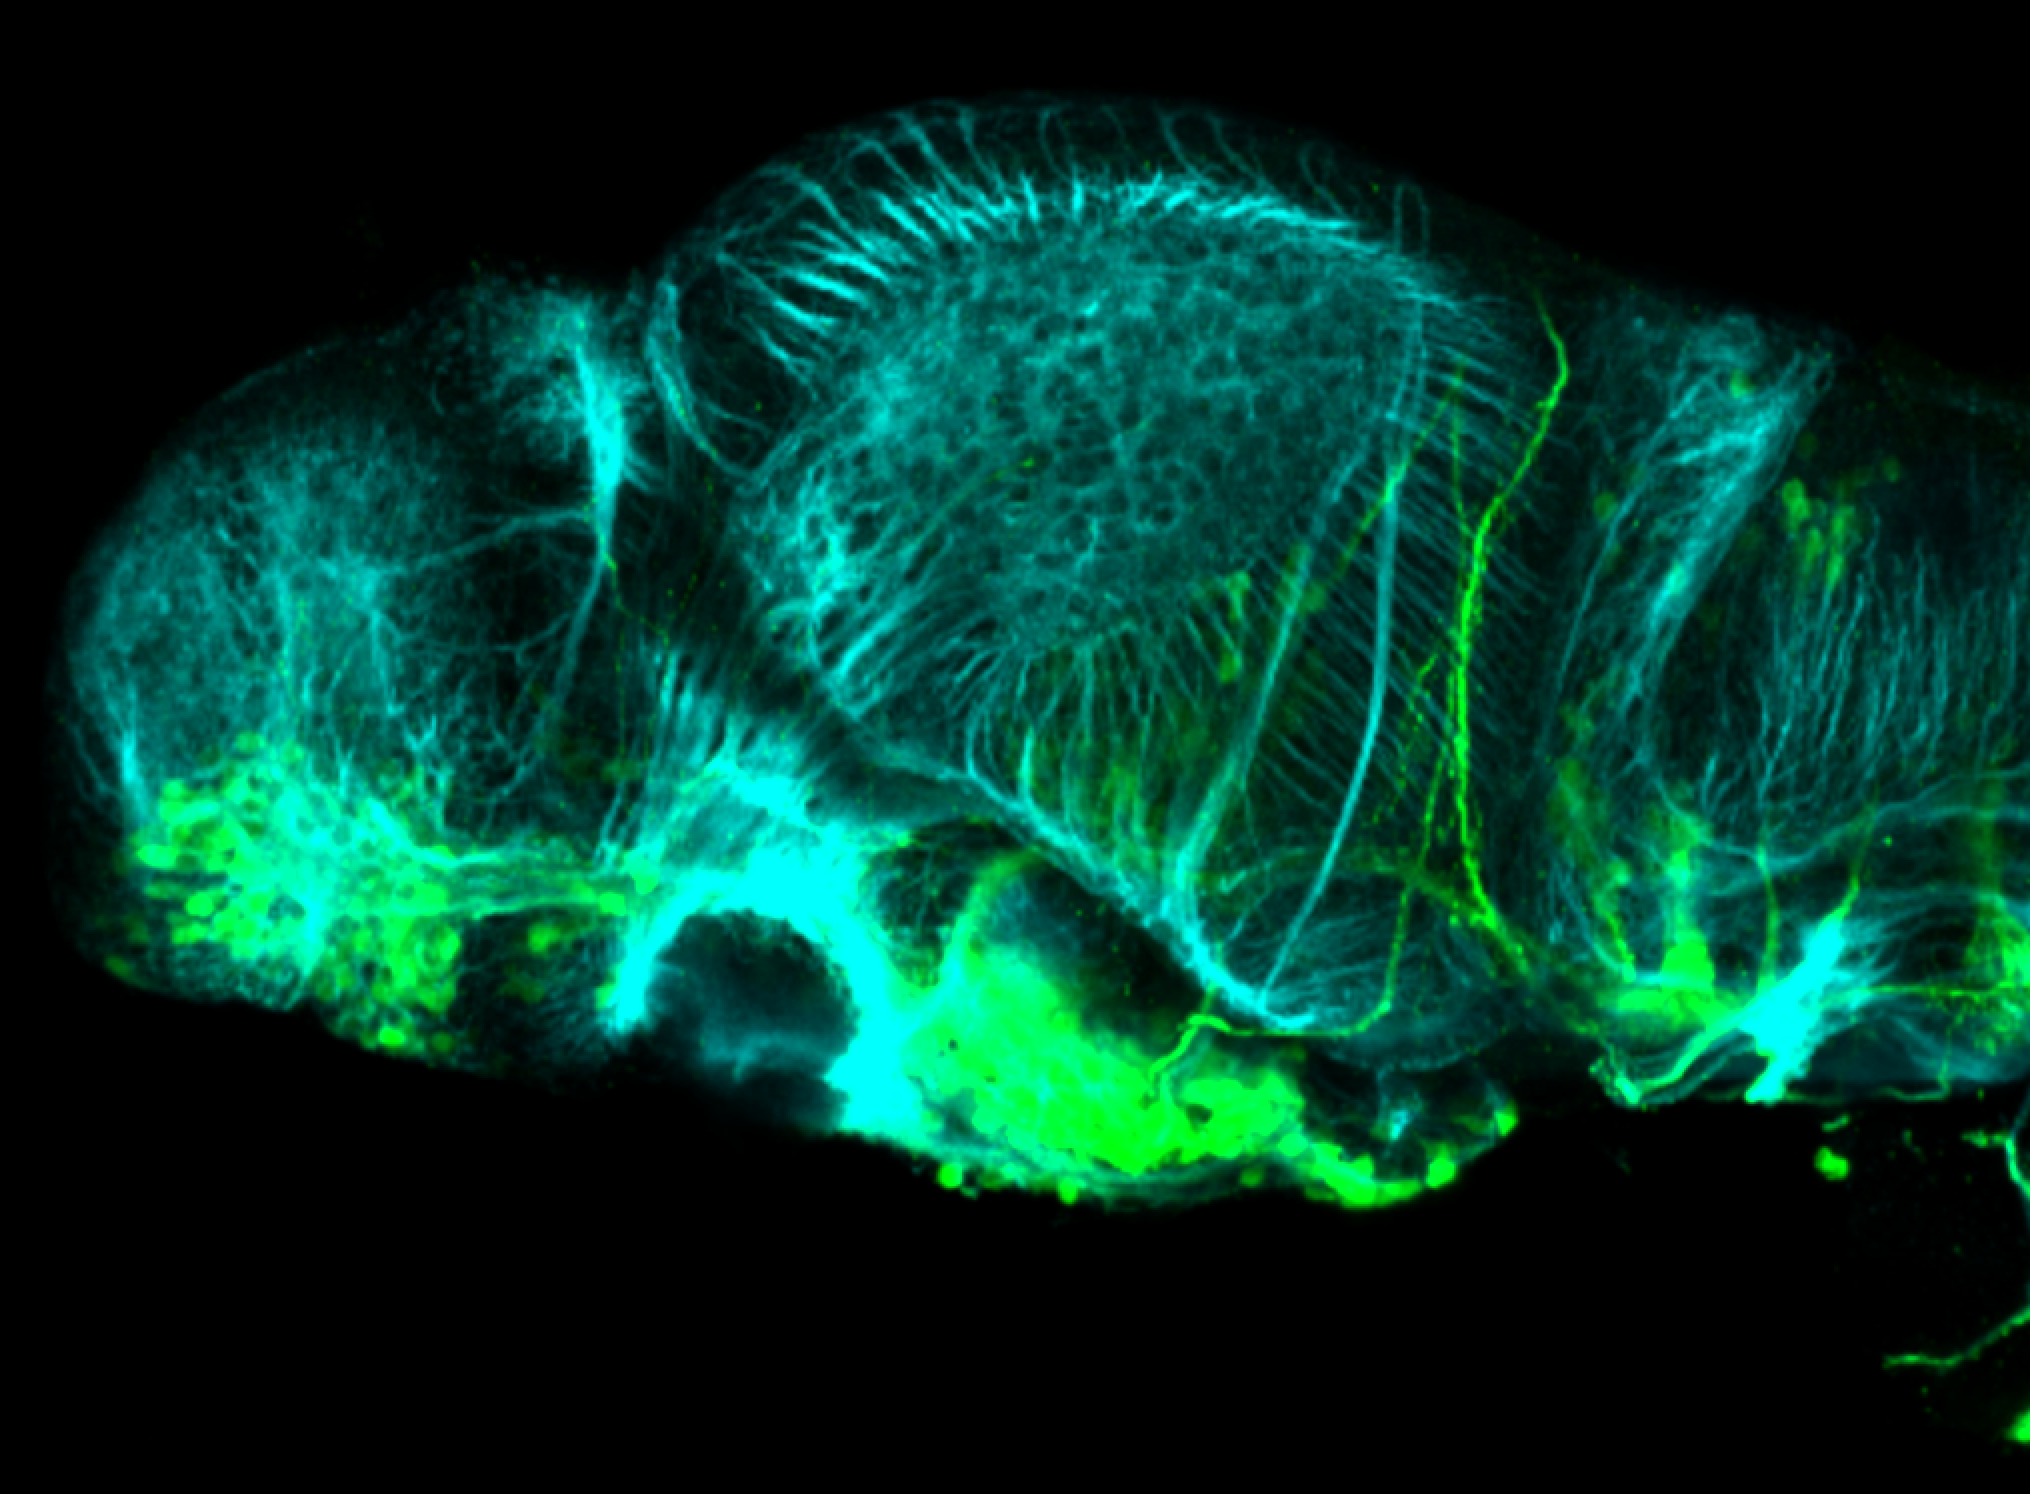 isl1:GFP 3dpf lateral forebrain with tubulin(cyan)